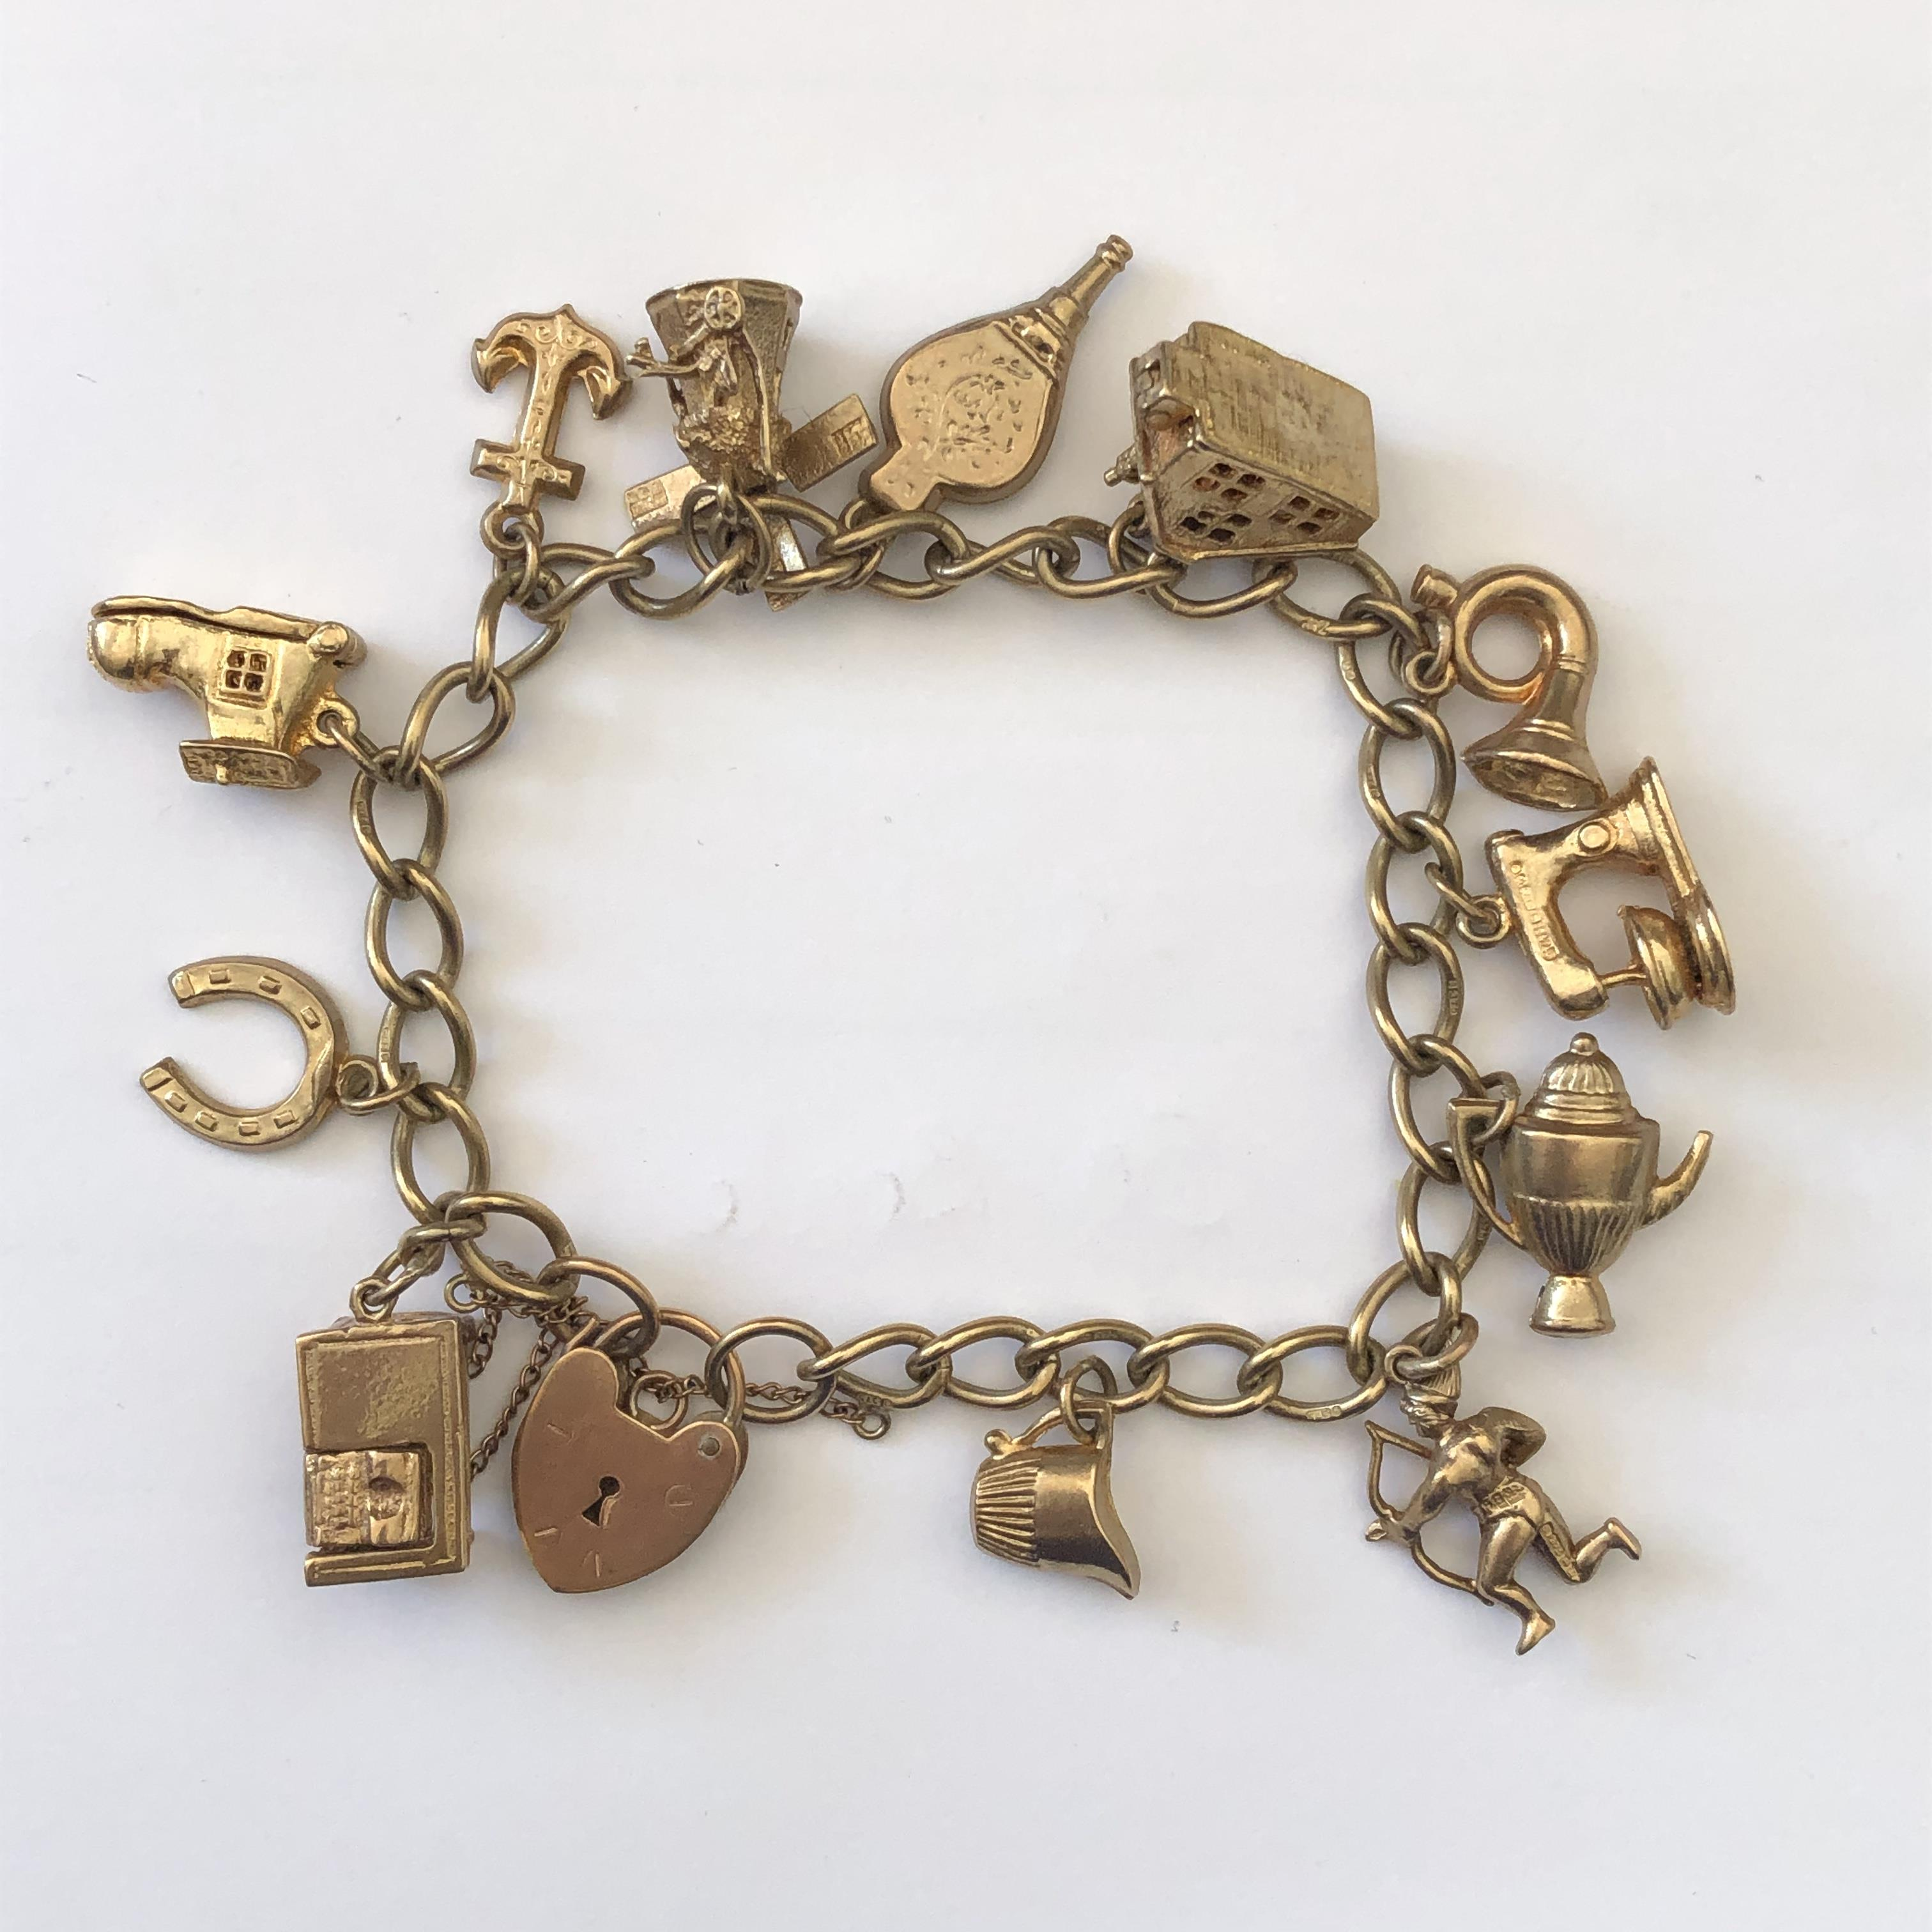 Lot 203 - 9CT GOLD BRACELET WITH VARIOUS CHARMS AND HEART PADLOCK CLASP 28.